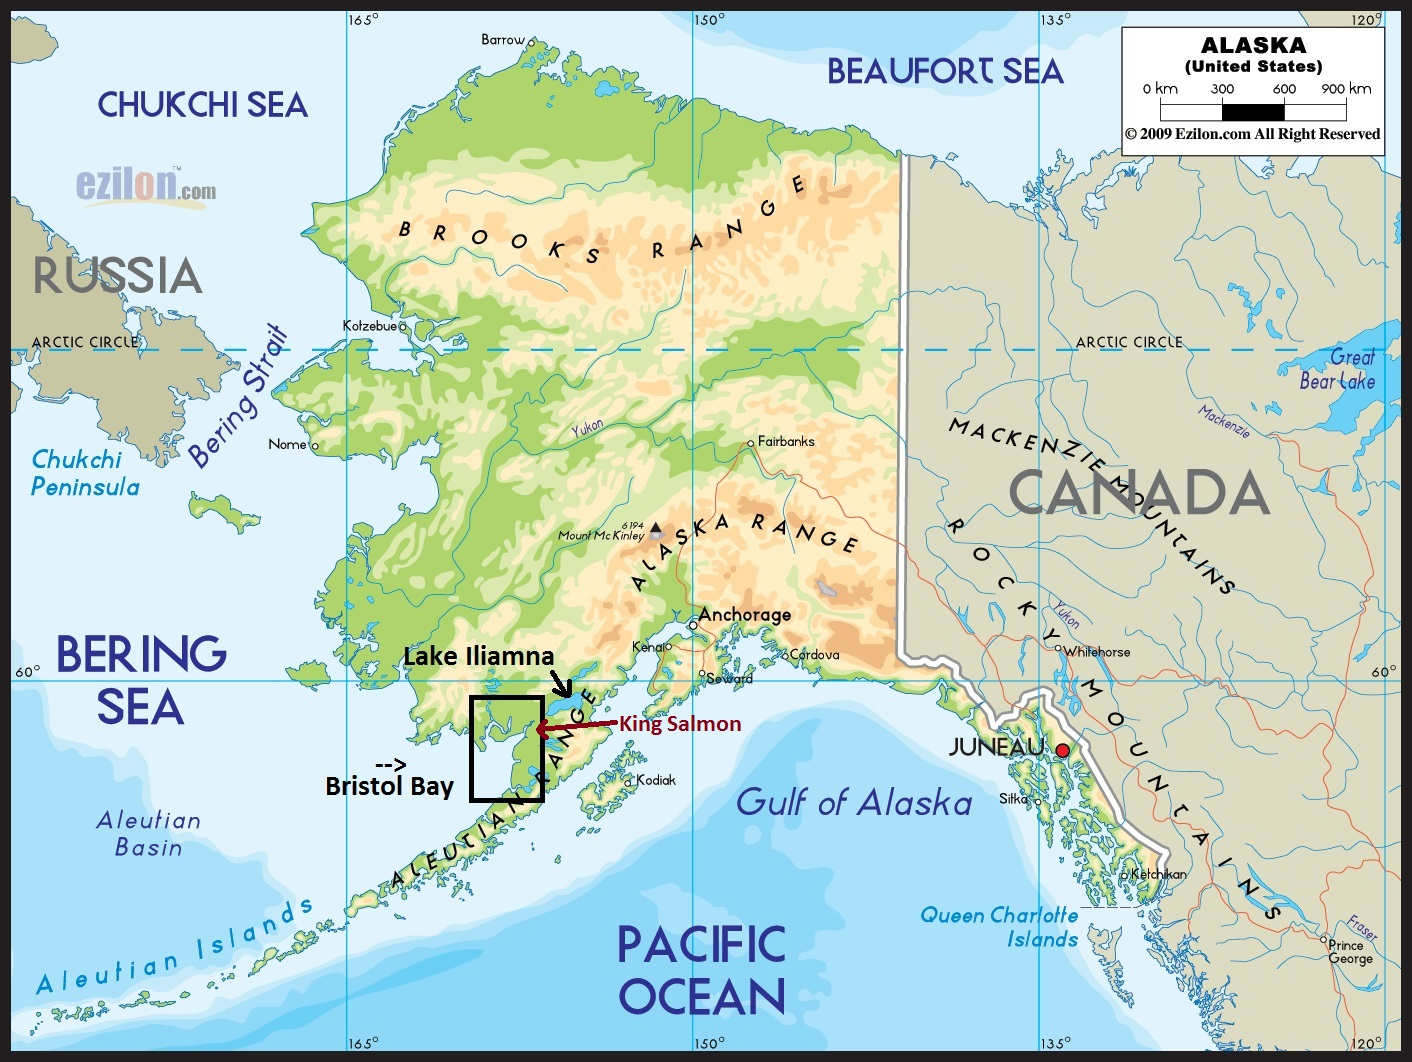 this map shows where in alaska bristol bay is located i also pointed out lake iliamna on this map this is where half of the world s red salmon comes